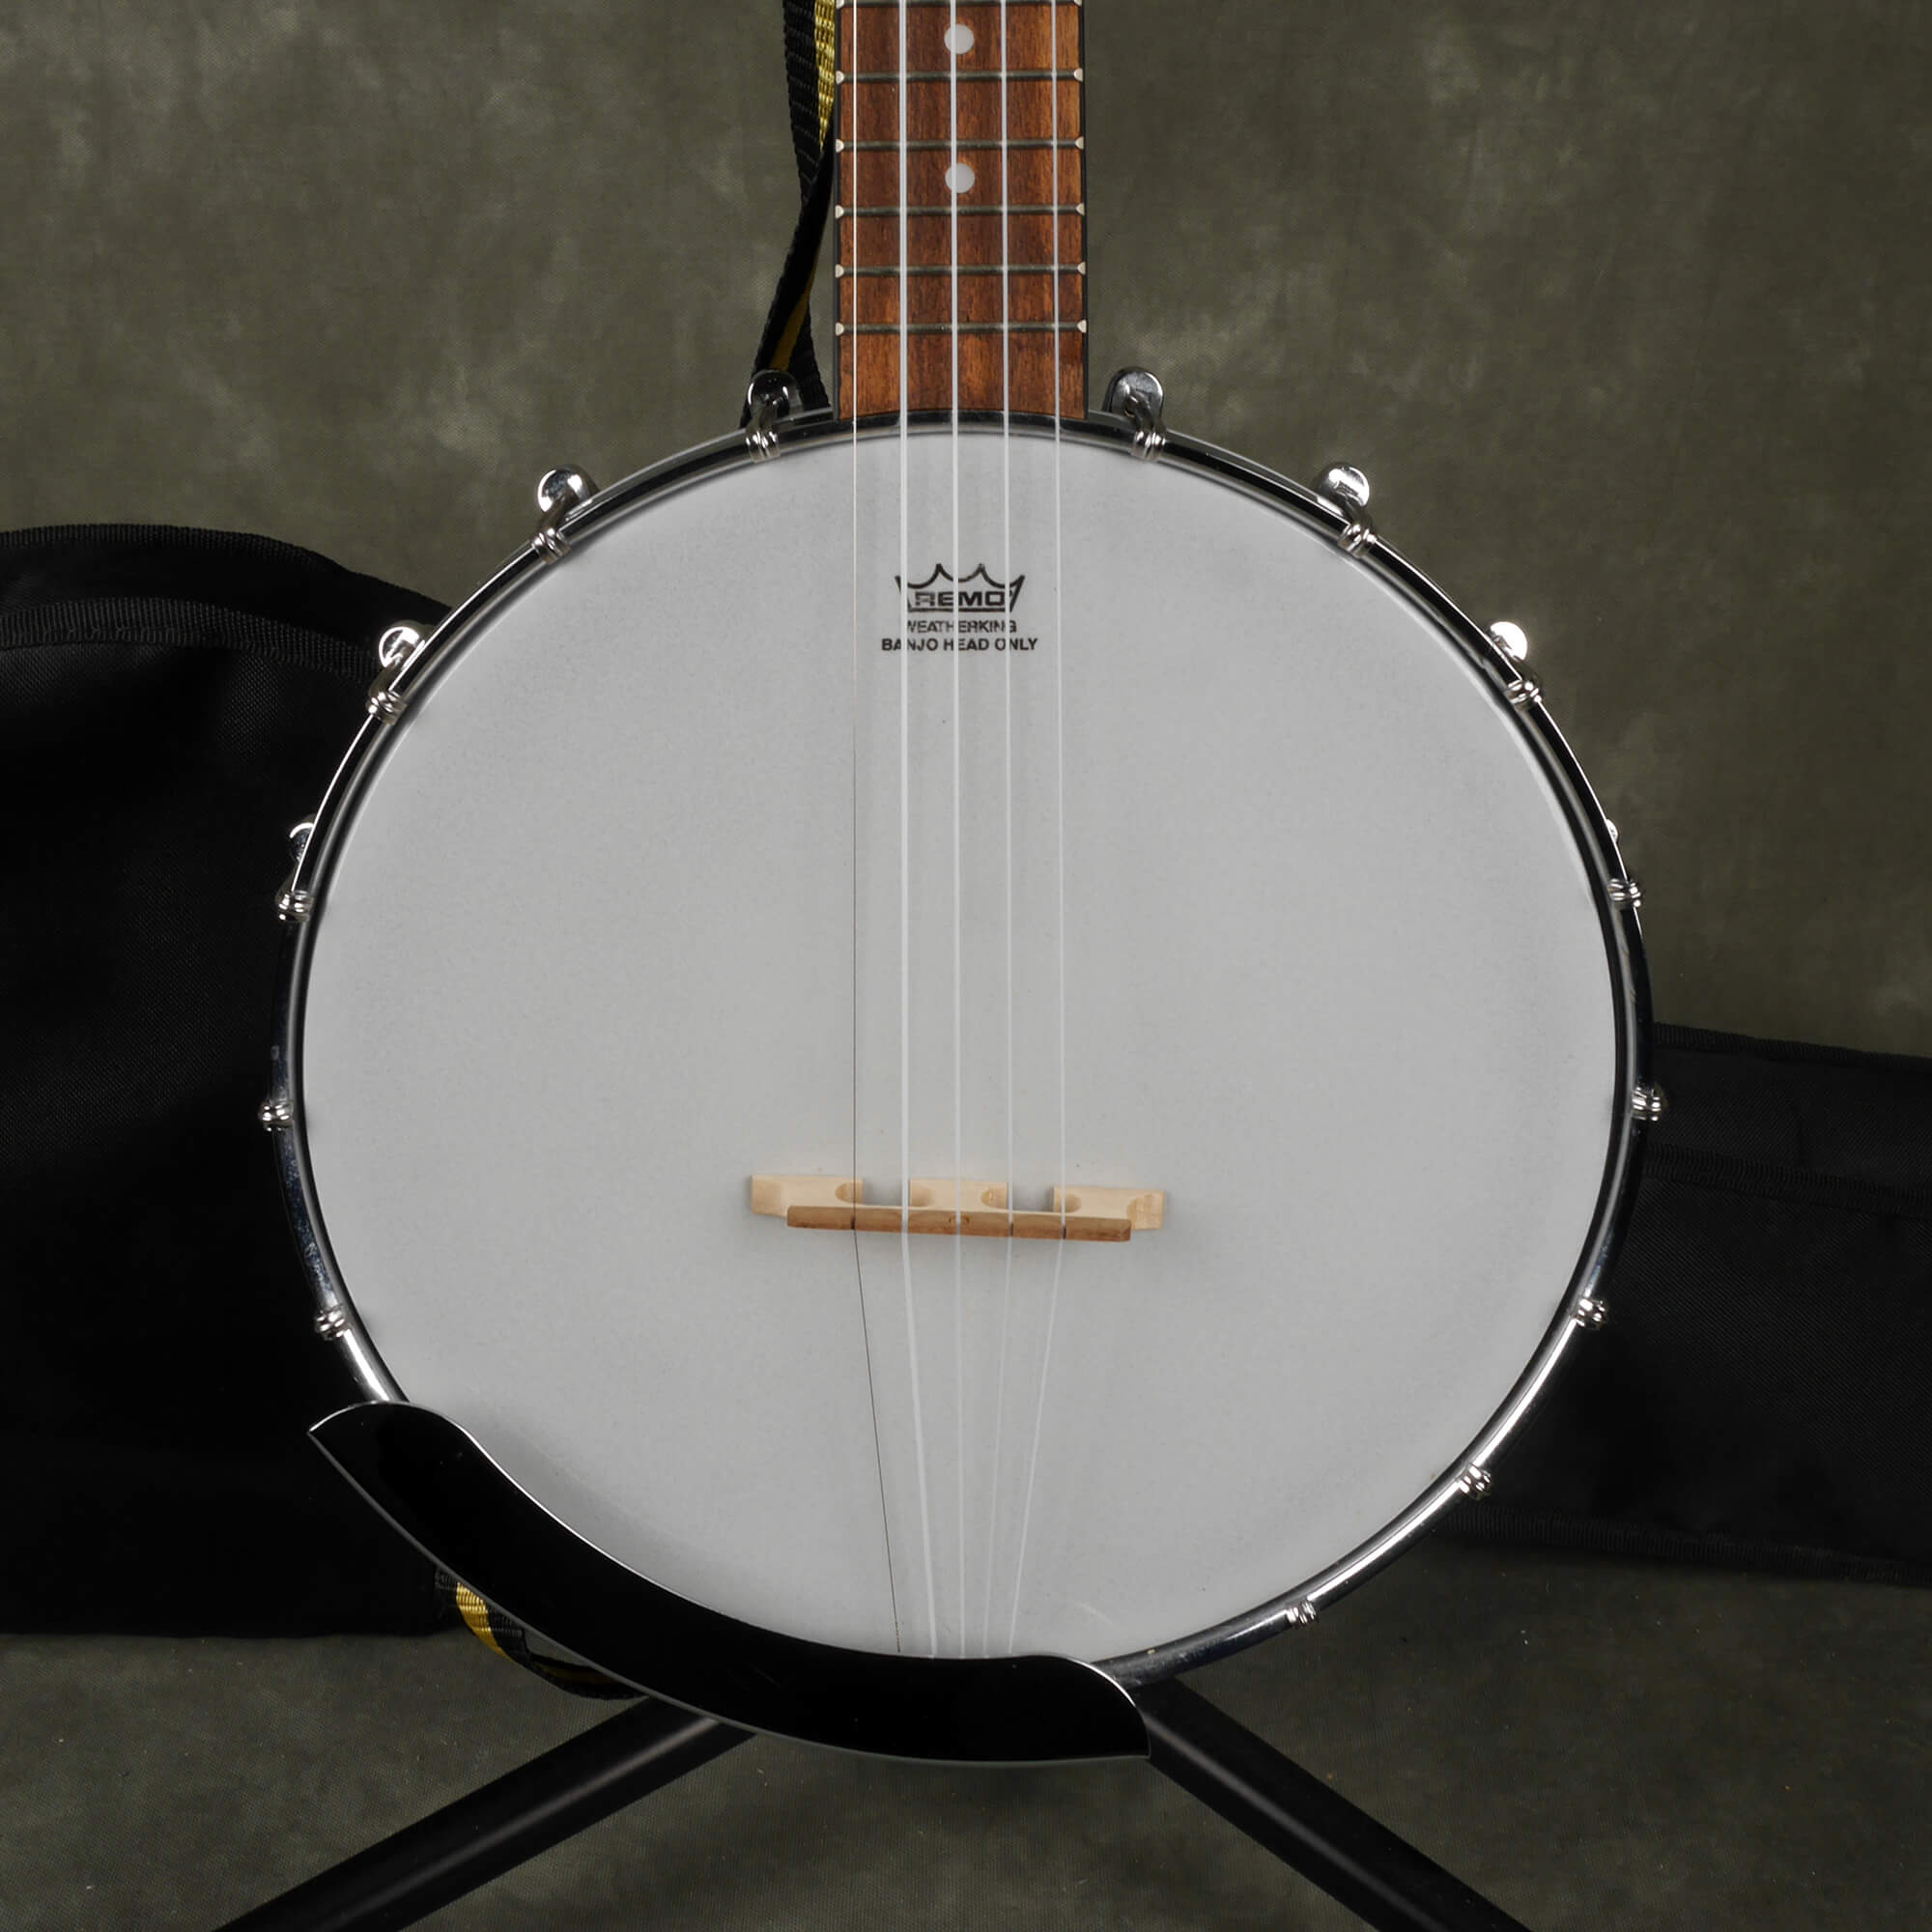 Tanglewood TWB T 5-String Union Series Travel Banjo w/Gig Bag - 2nd Hand